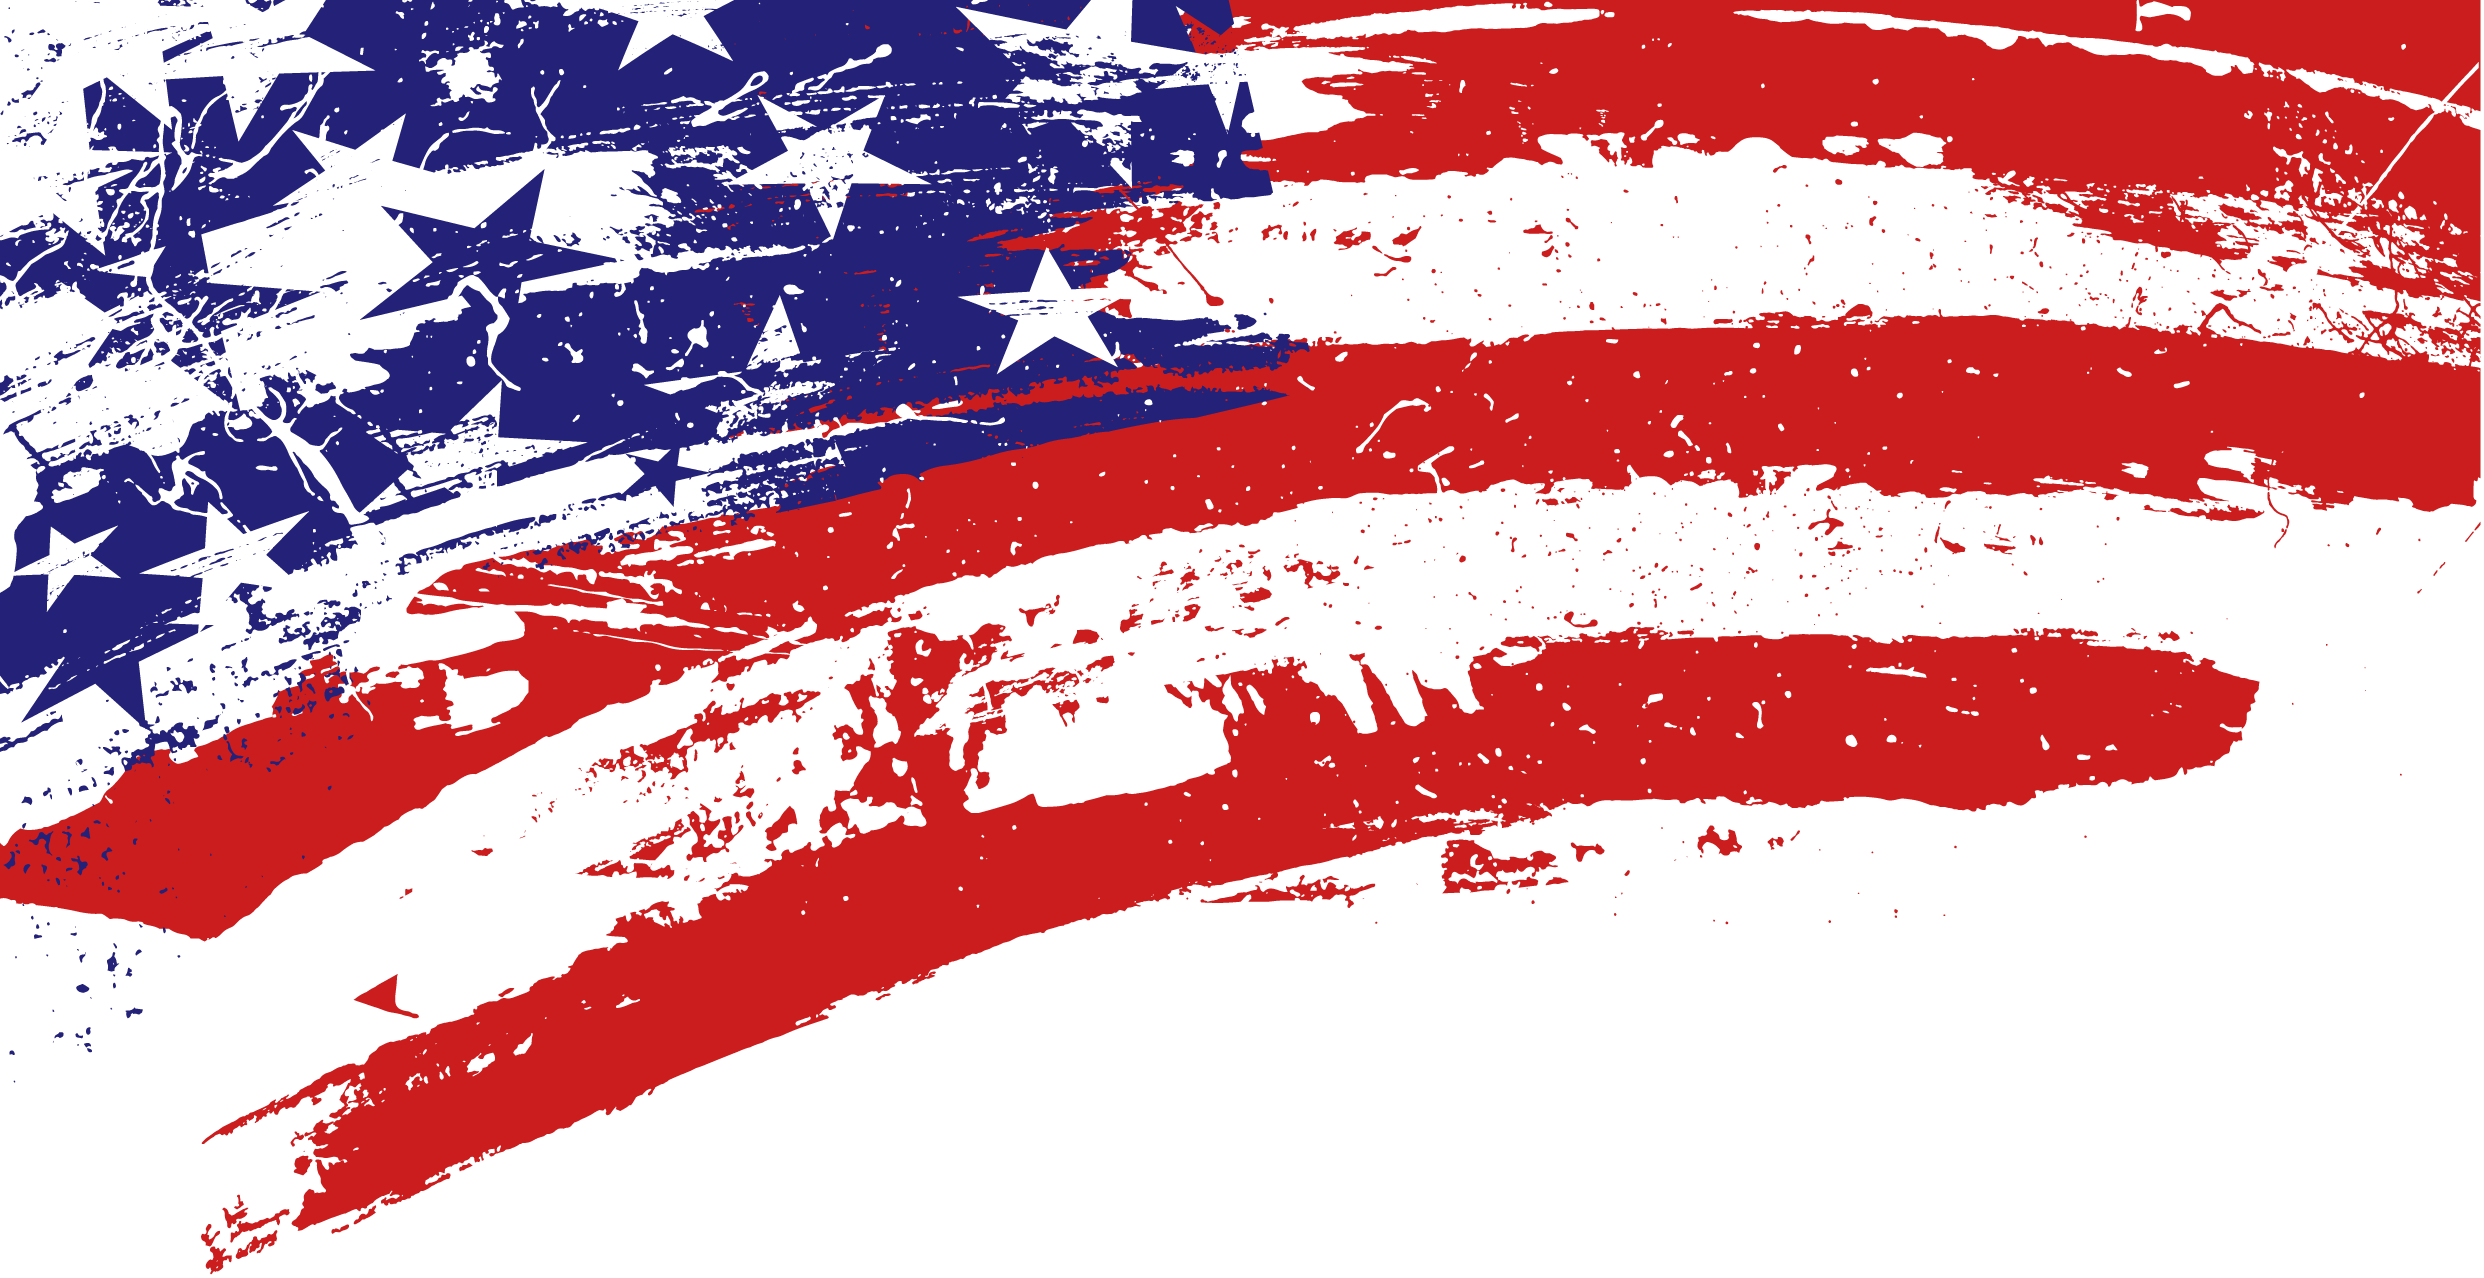 Download America Flag High Quality Png Hq Png Image In Different Resolution Freepngimg